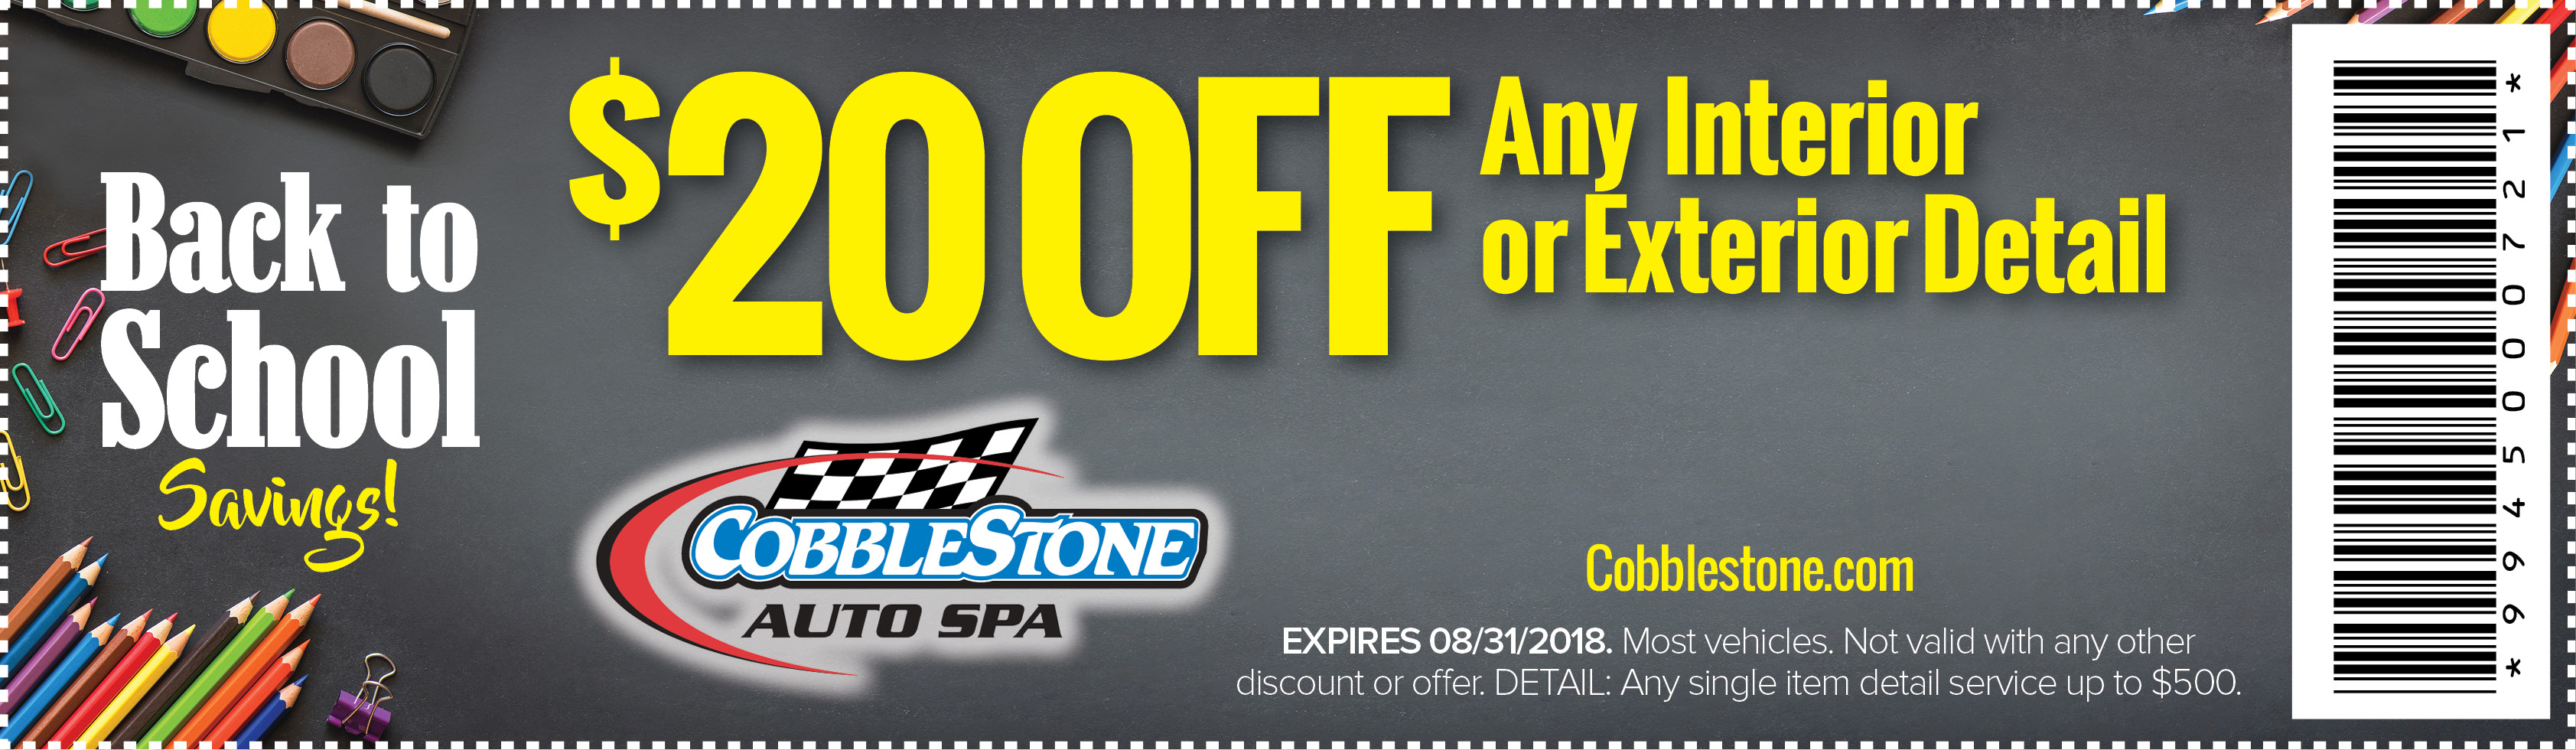 back to school coupon - save $20 off interior or exterior detail